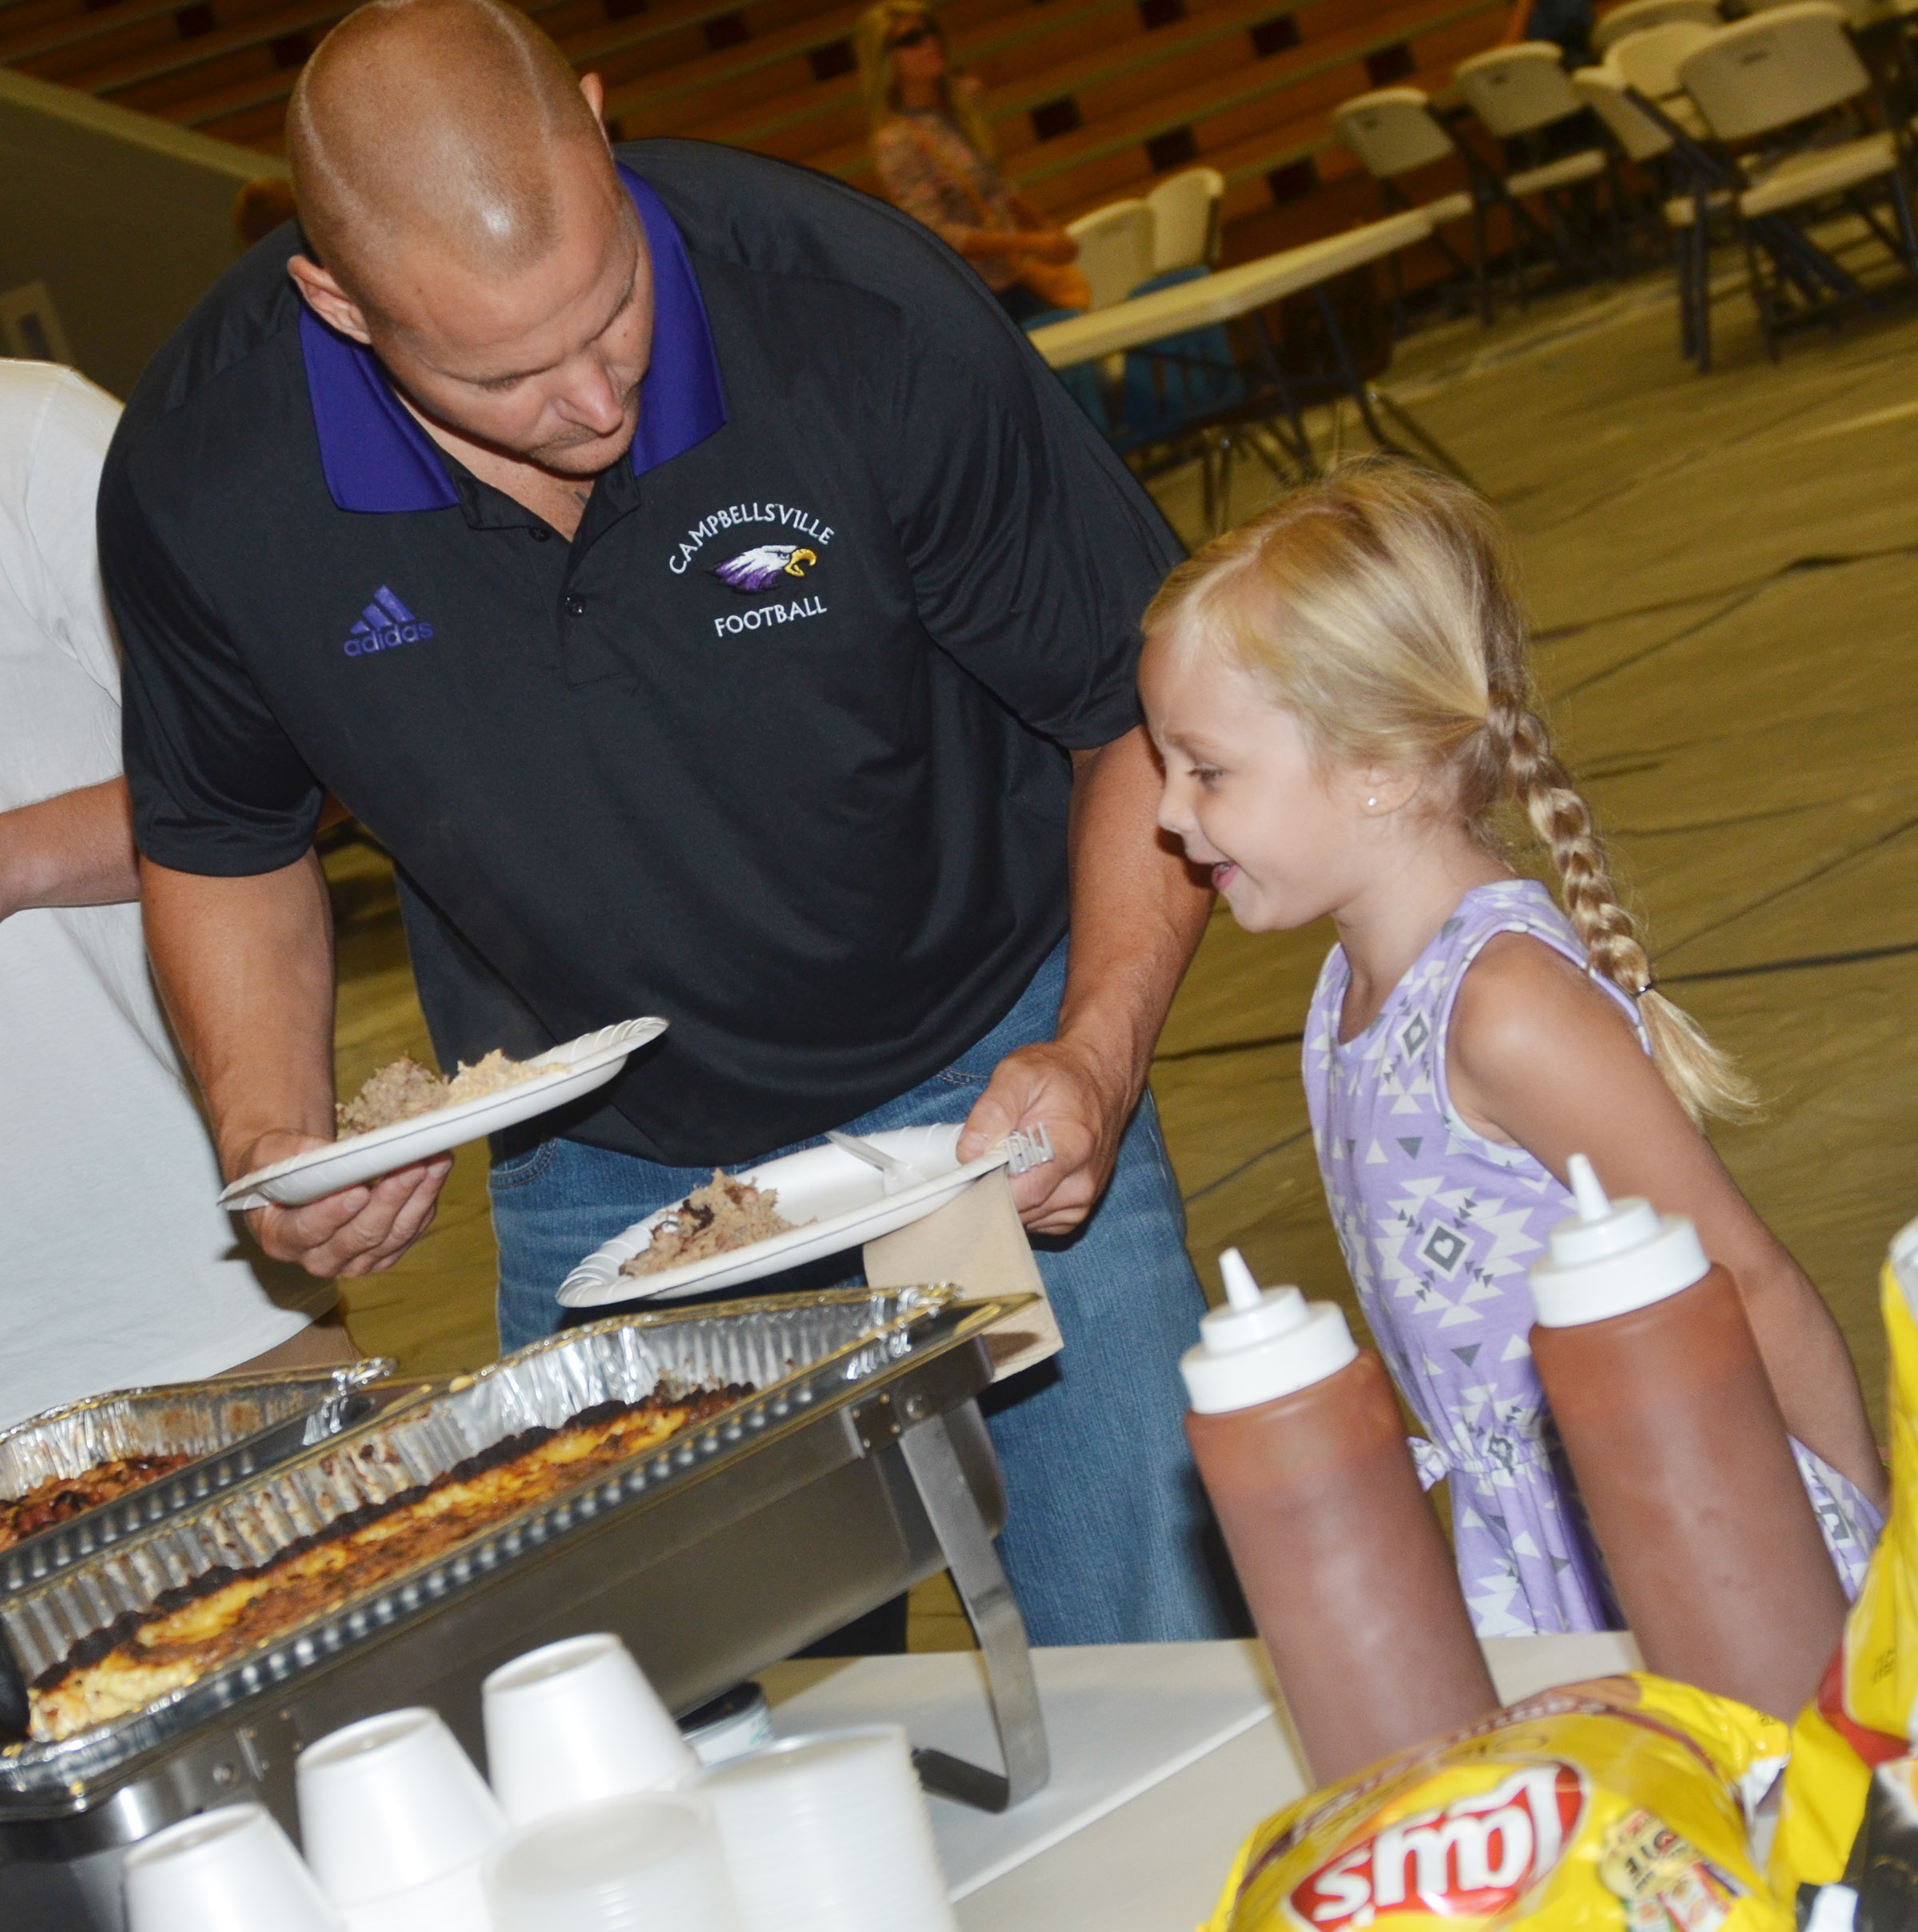 CHS assistant football coach Robbie Gribbins helps his daughter, Trinidy, a kindergartener at Campbellsville Elementary School, get some barbecue for lunch.